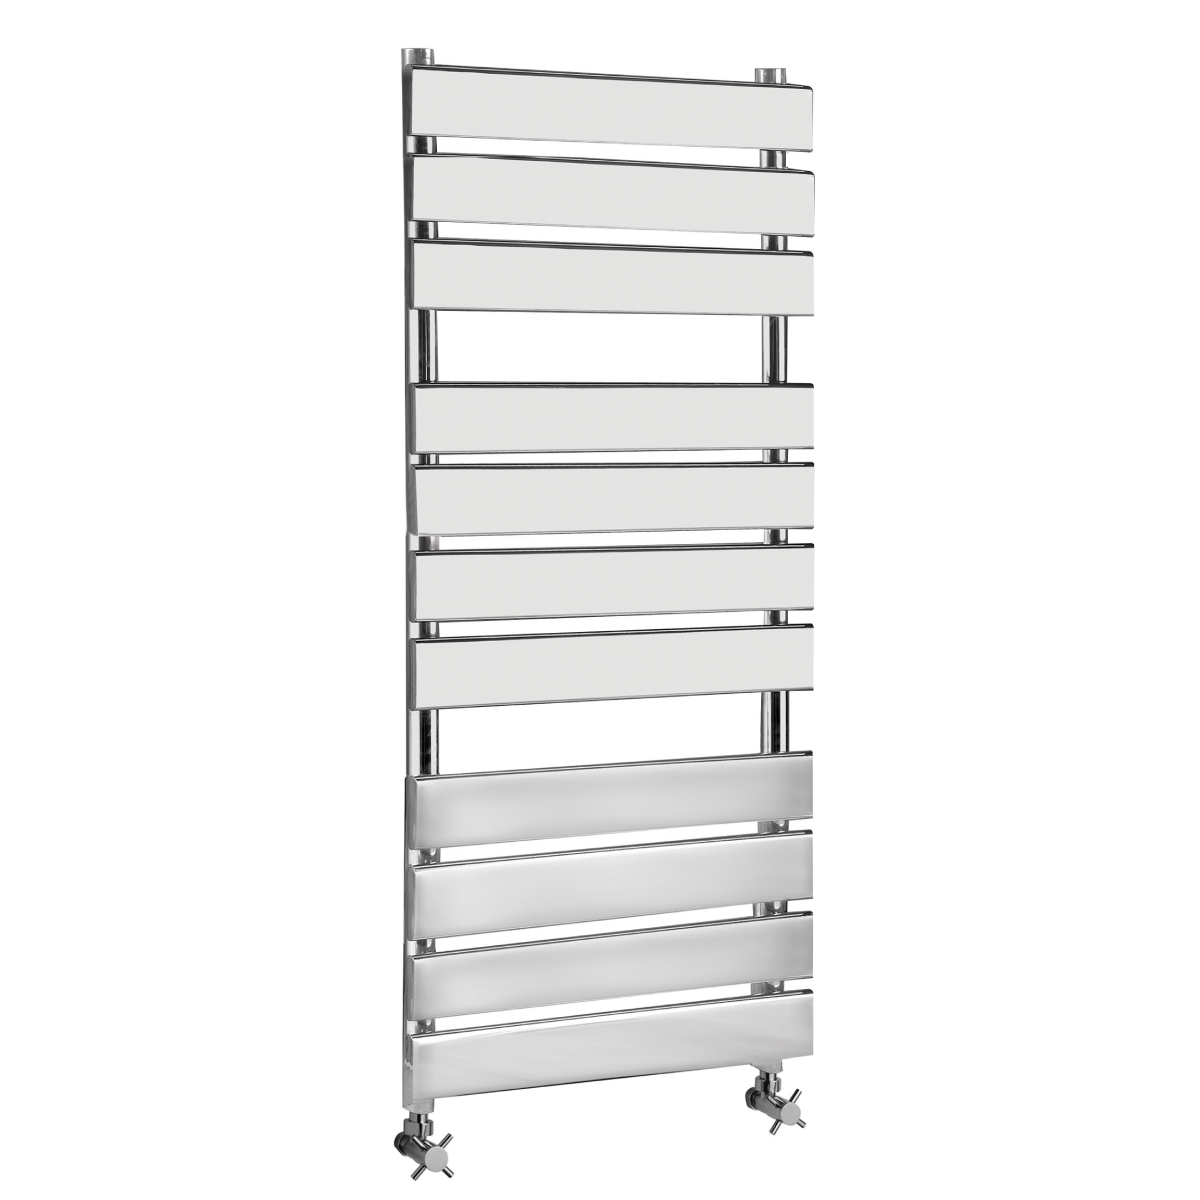 Frontline Piazza Chrome Heated Towel Rail With Flat Towel Bars & 2 Hanging Areas W500 H745